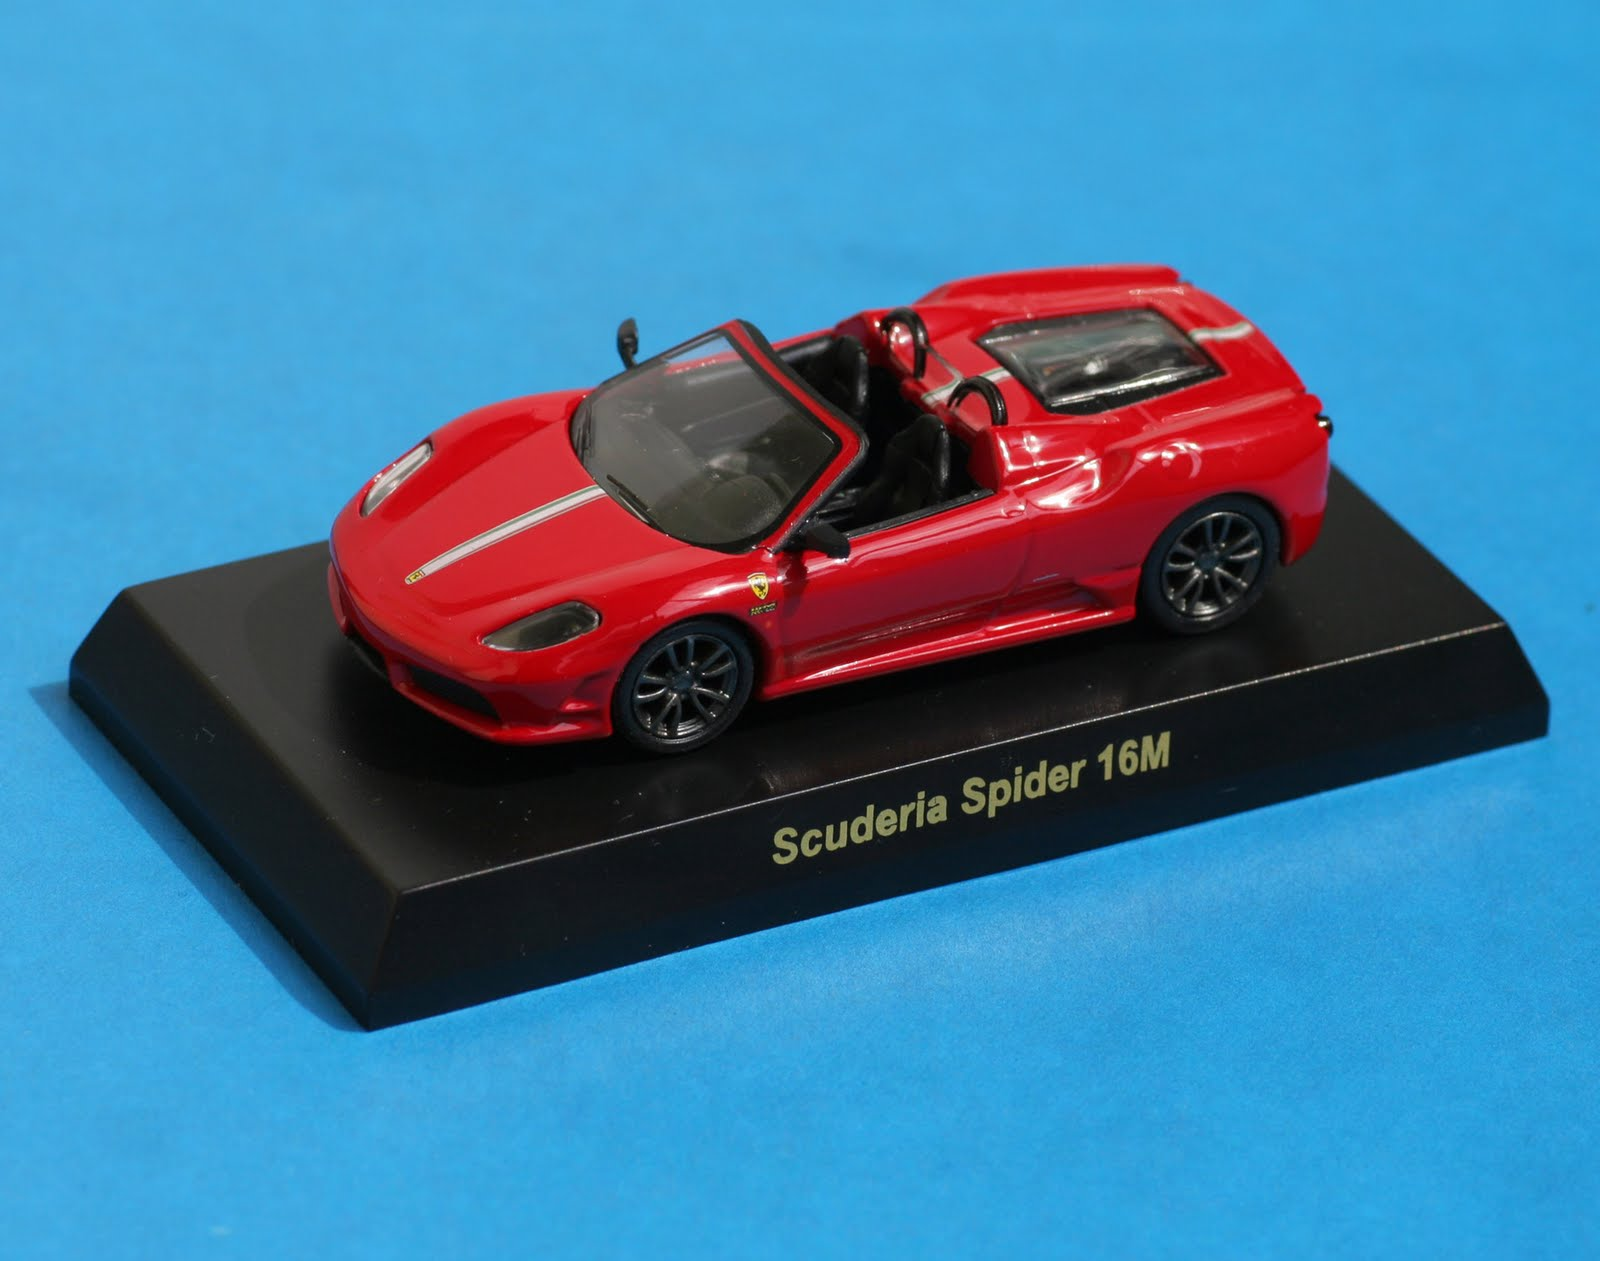 Incredible Mini Garage: Ferrari Scuderia Spider 16M 2008 Kyosho 1/64